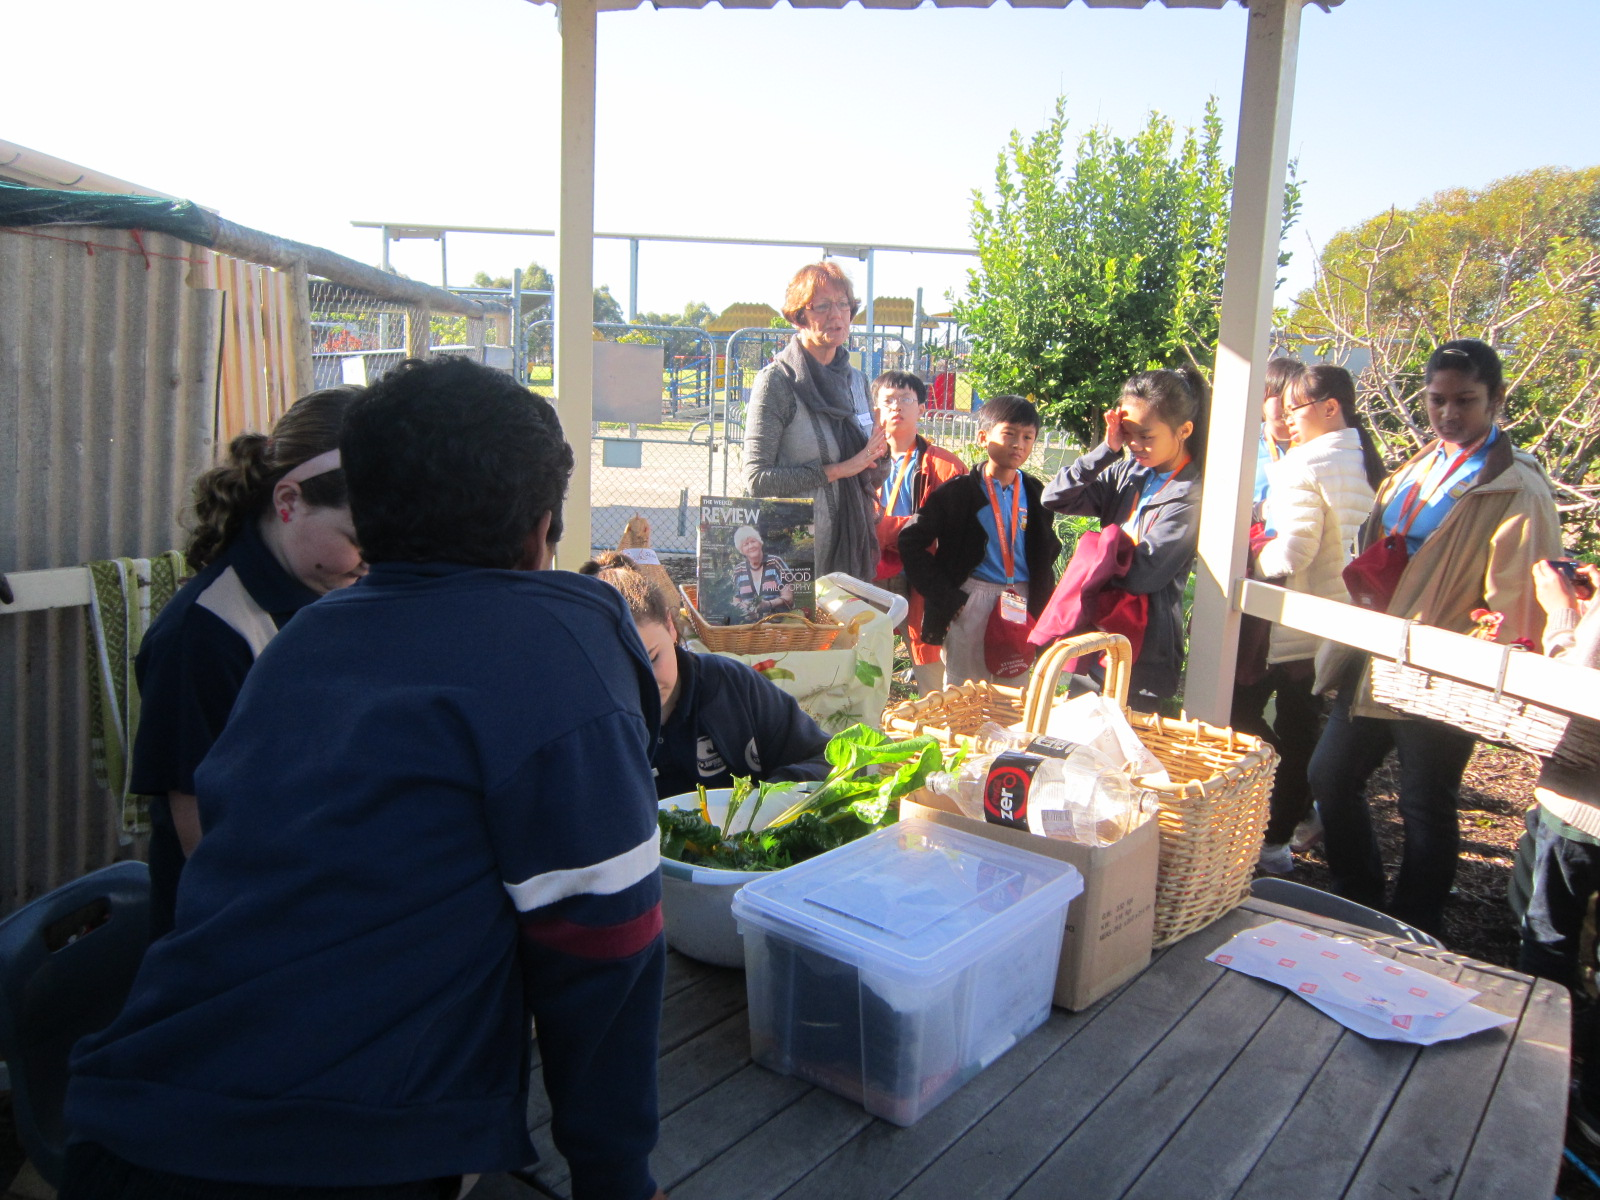 Stephanie Alexander Kitchen Garden National Program Global Classroom P5 Perth Australia Immersion Programme 2013